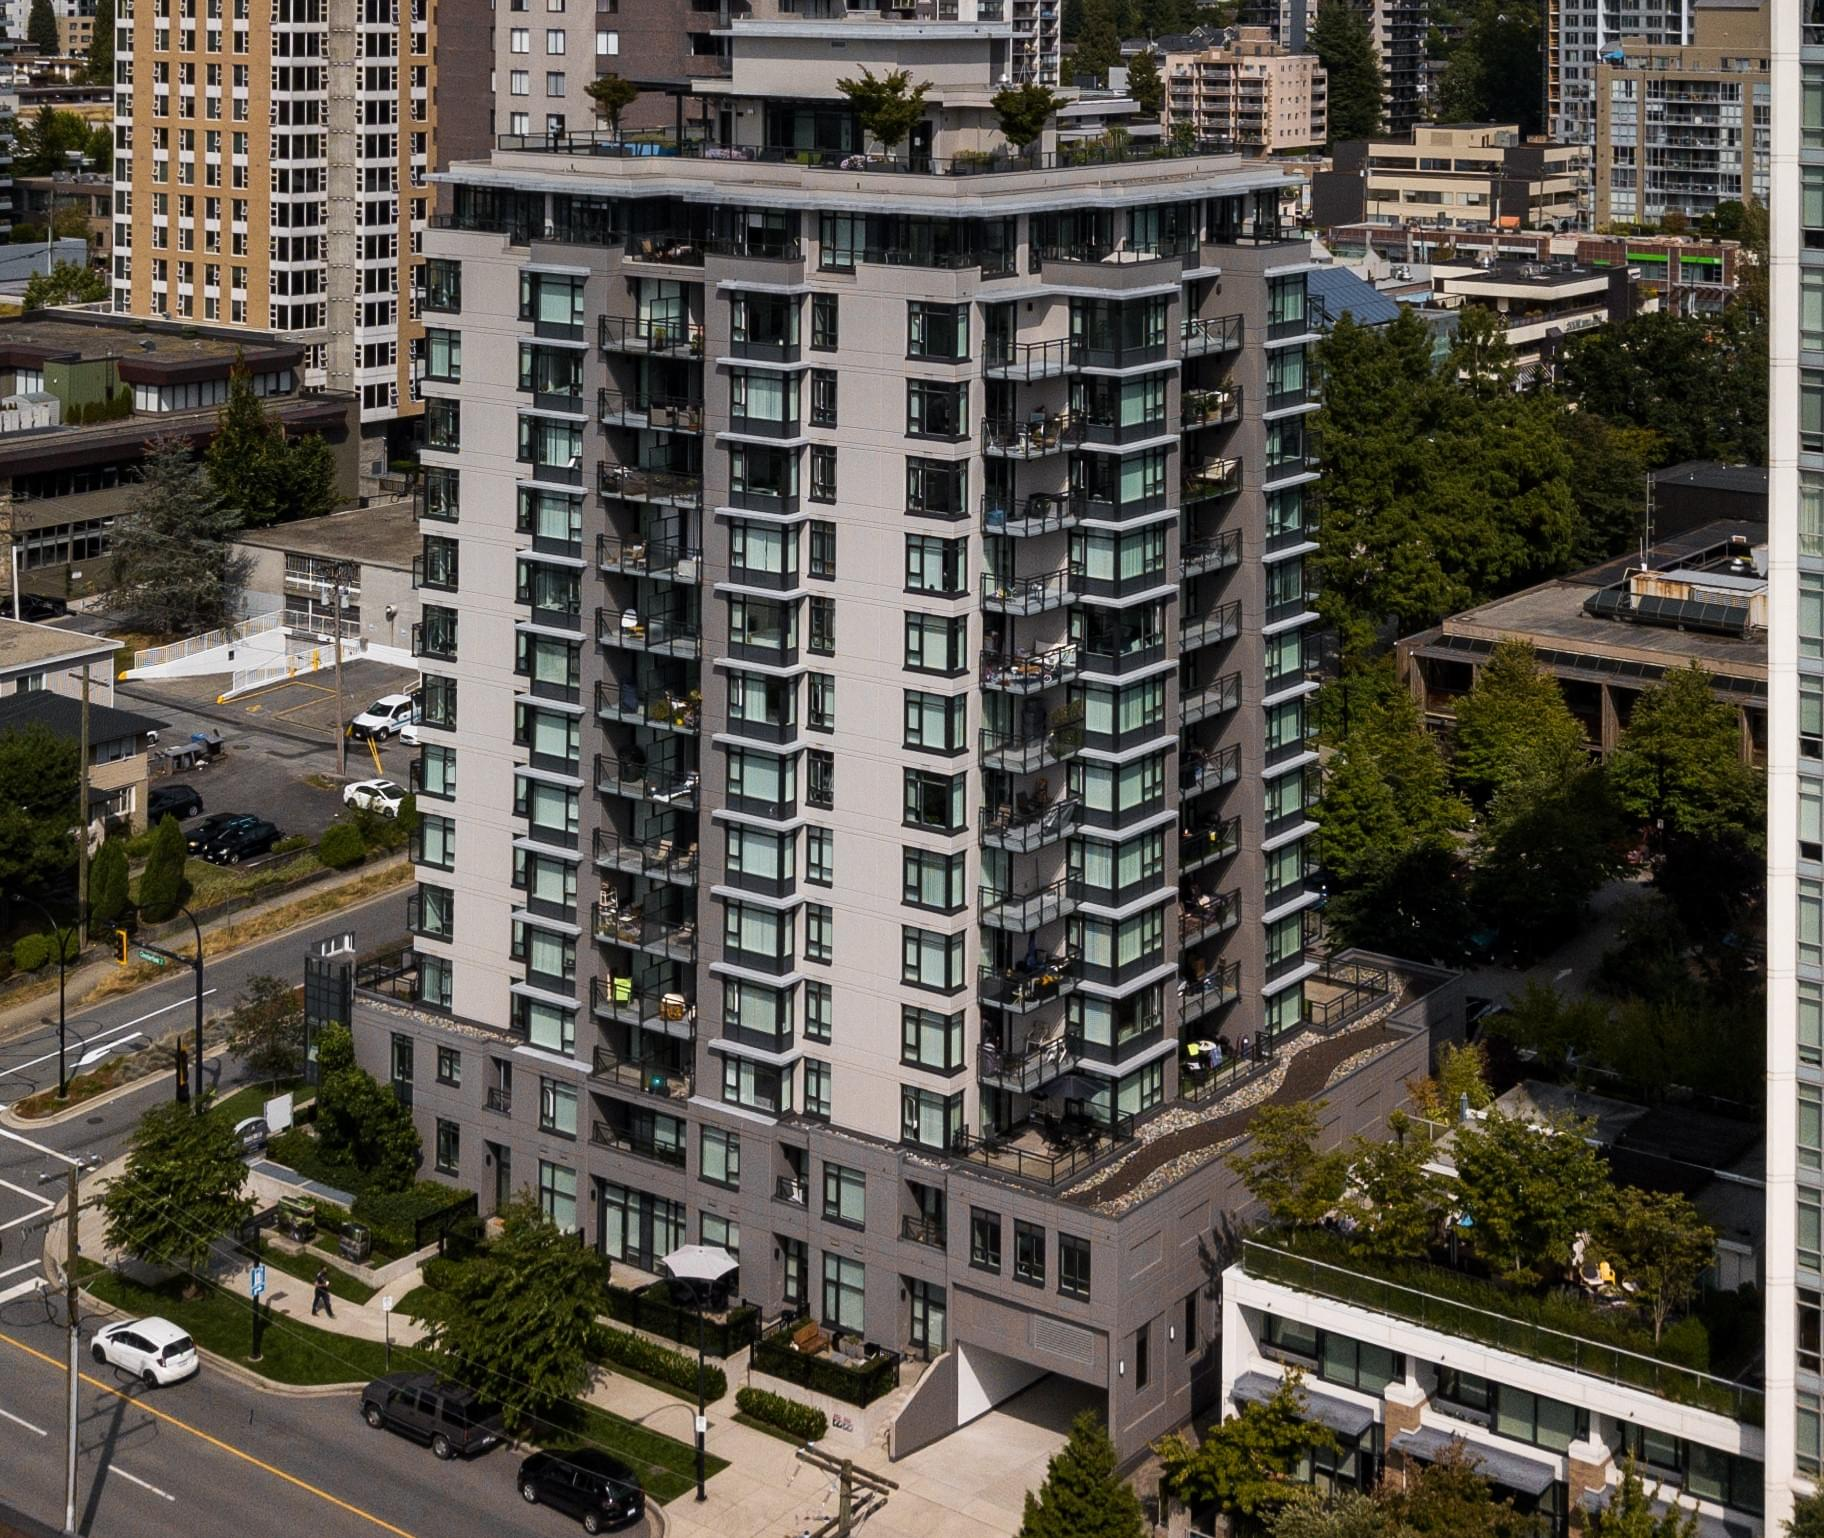 Bridgewater, 175 14th st. West North vancouver Drone2.min